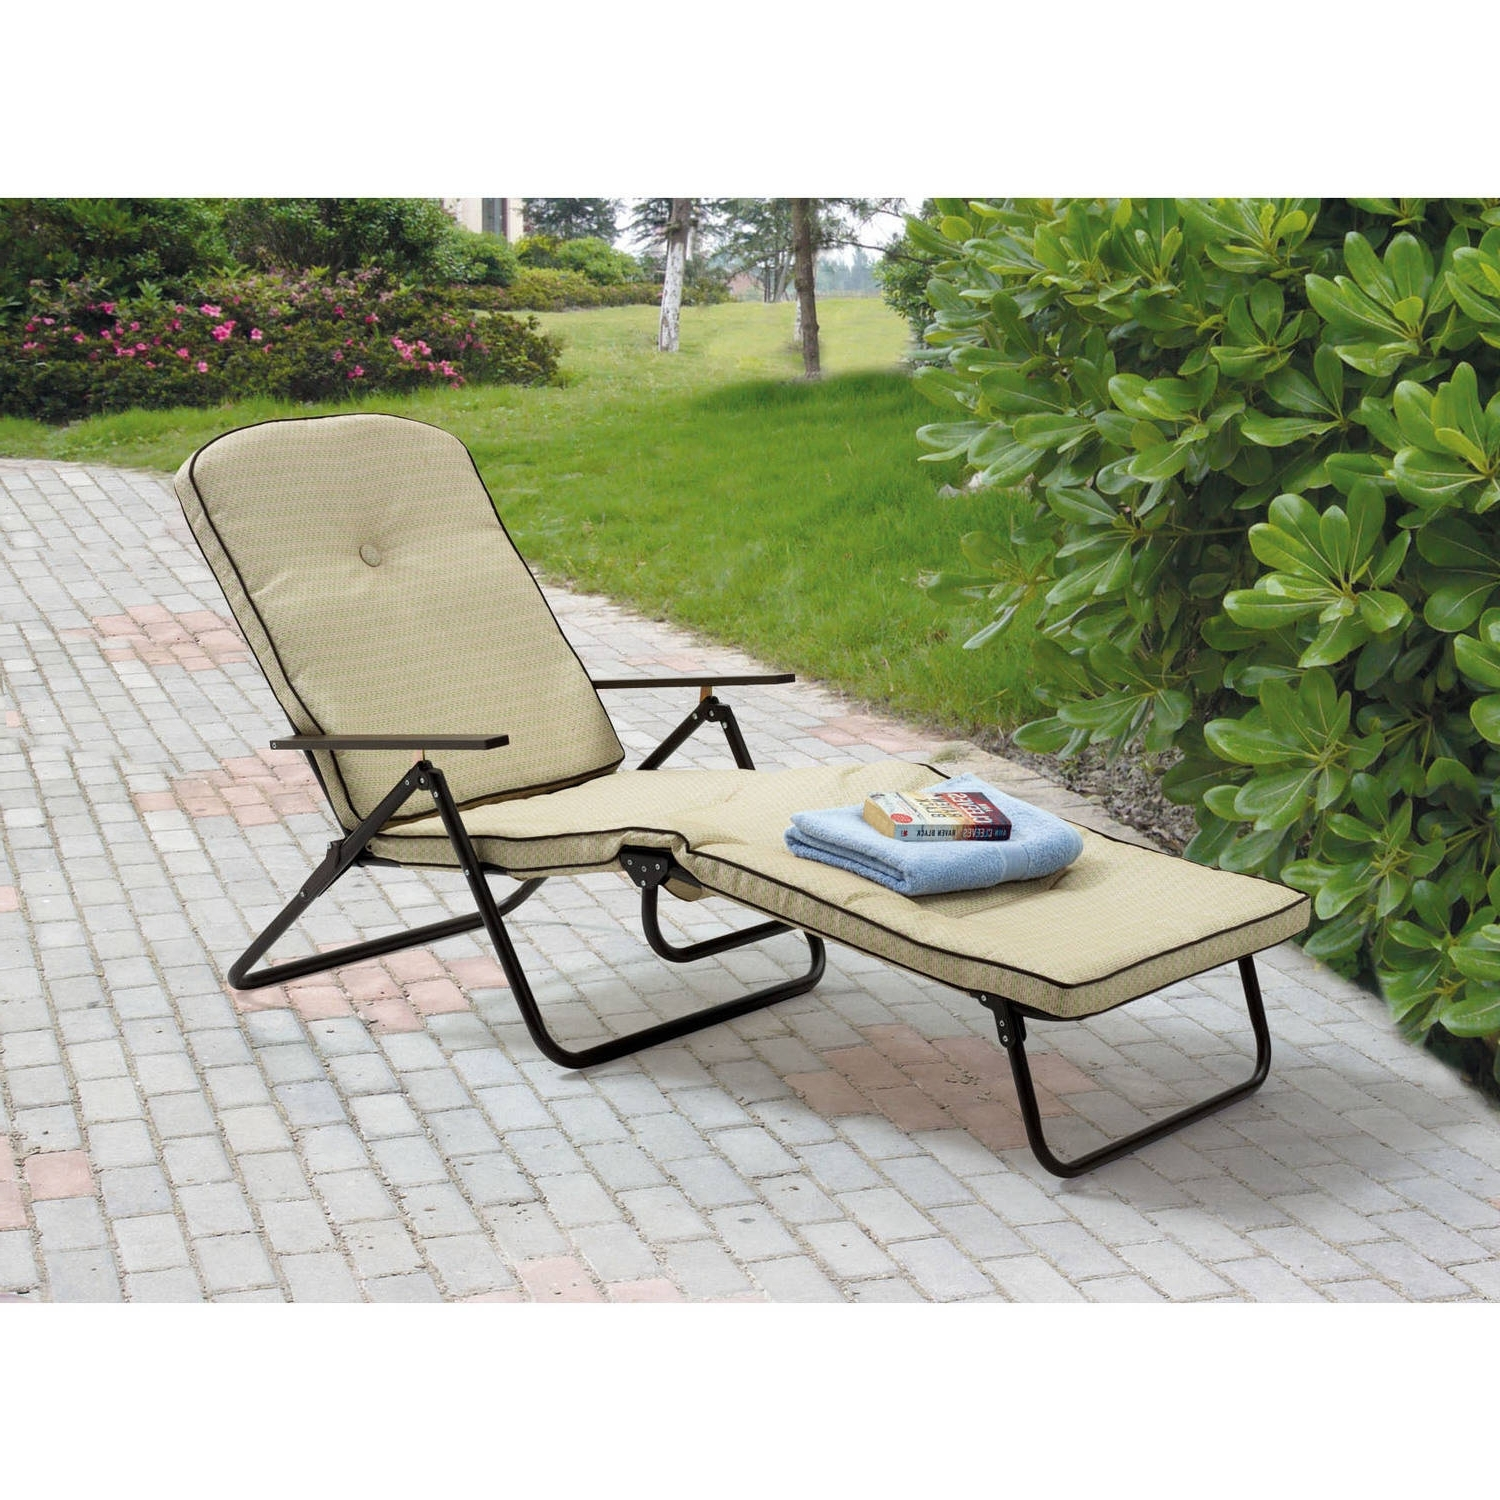 Famous Outdoor : Jelly Lounge Chair Chaise Lounge Sofa Chaise Lounge For Jelly Chaise Lounge Chairs (View 1 of 15)